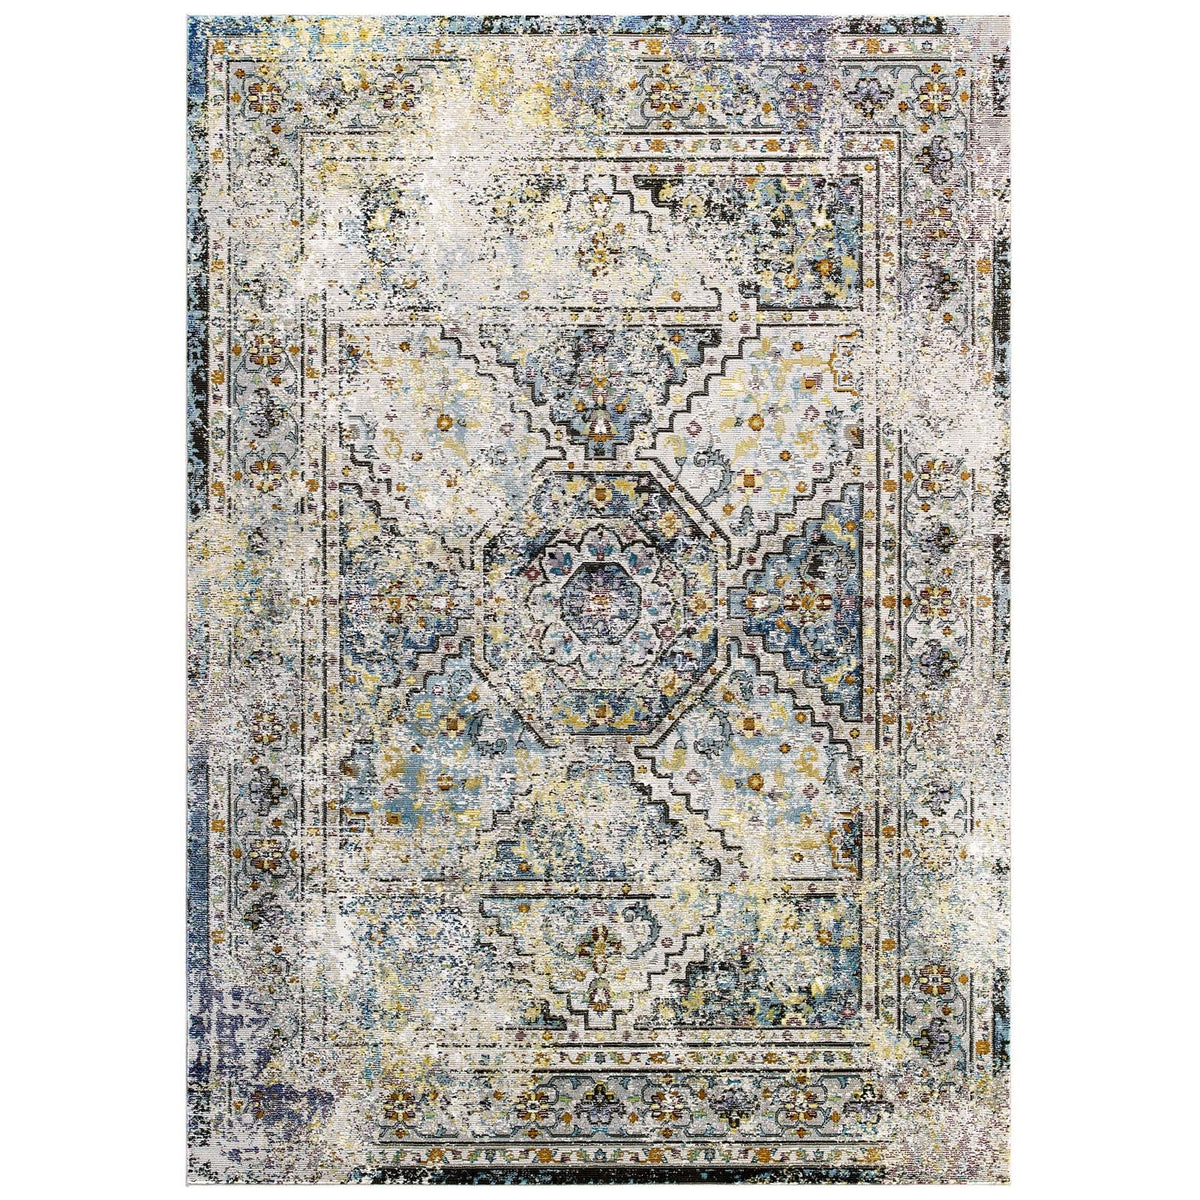 Pinole 8x10 Distressed Vintage Persian Area Rug